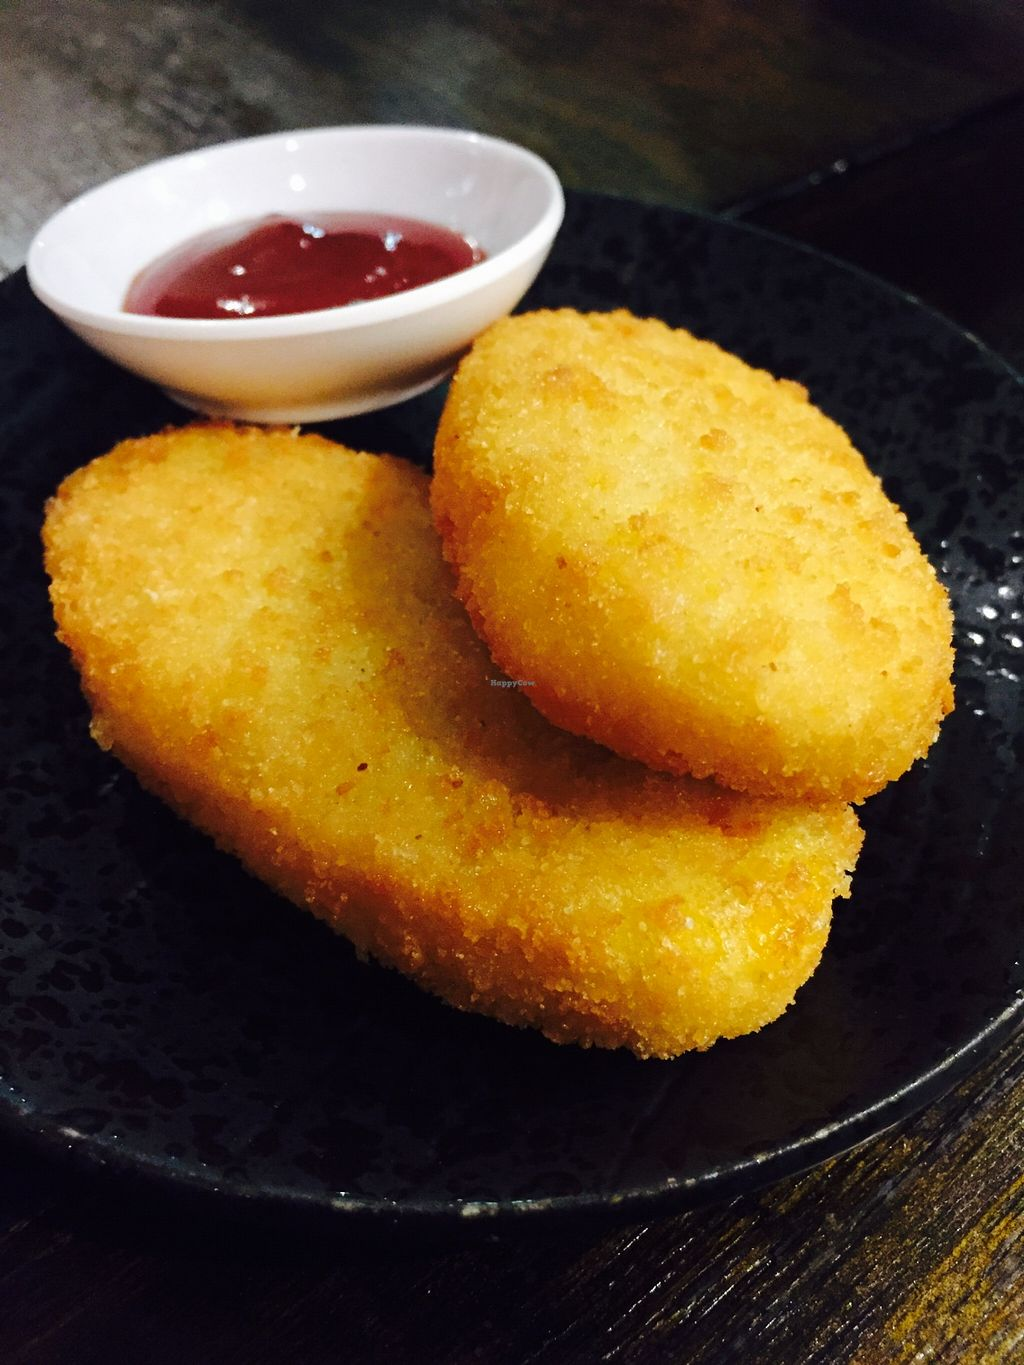 """Photo of Vegeme  by <a href=""""/members/profile/karlaess"""">karlaess</a> <br/>Corn fritters <br/> May 14, 2016  - <a href='/contact/abuse/image/64155/148924'>Report</a>"""